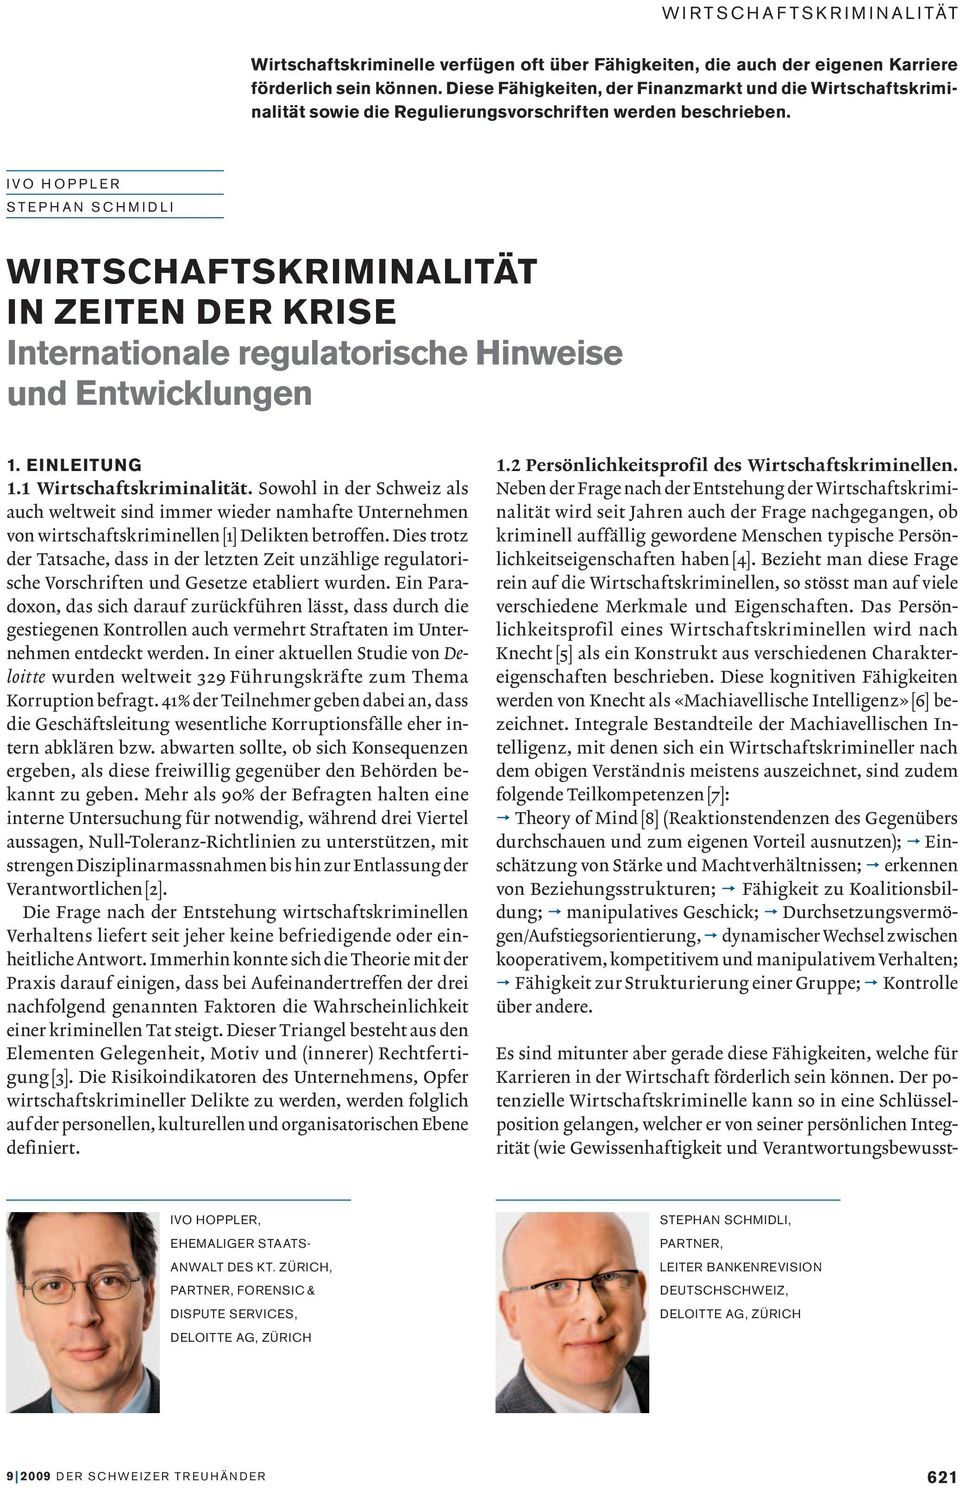 IVO HOPPLER STEPHAN SCHMIDLI IN ZEITEN DER KRISE Internationale regulatorische Hinweise und Entwicklungen 1. EINLEITUNG 1.1 Wirtschaftskriminalität.